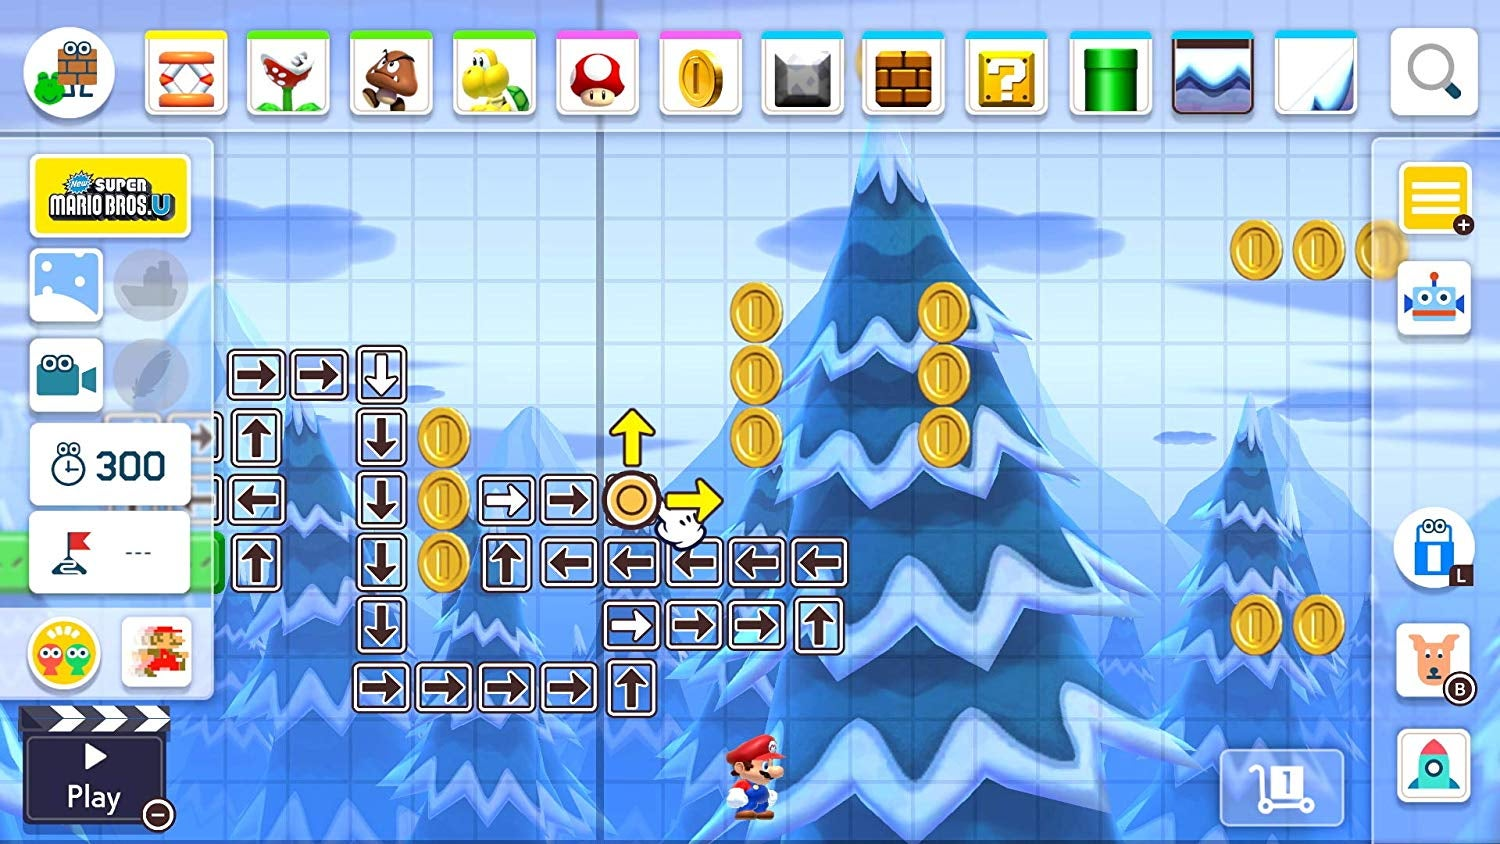 Nintendo Doubles Super Mario Maker 2 Level Upload Limit